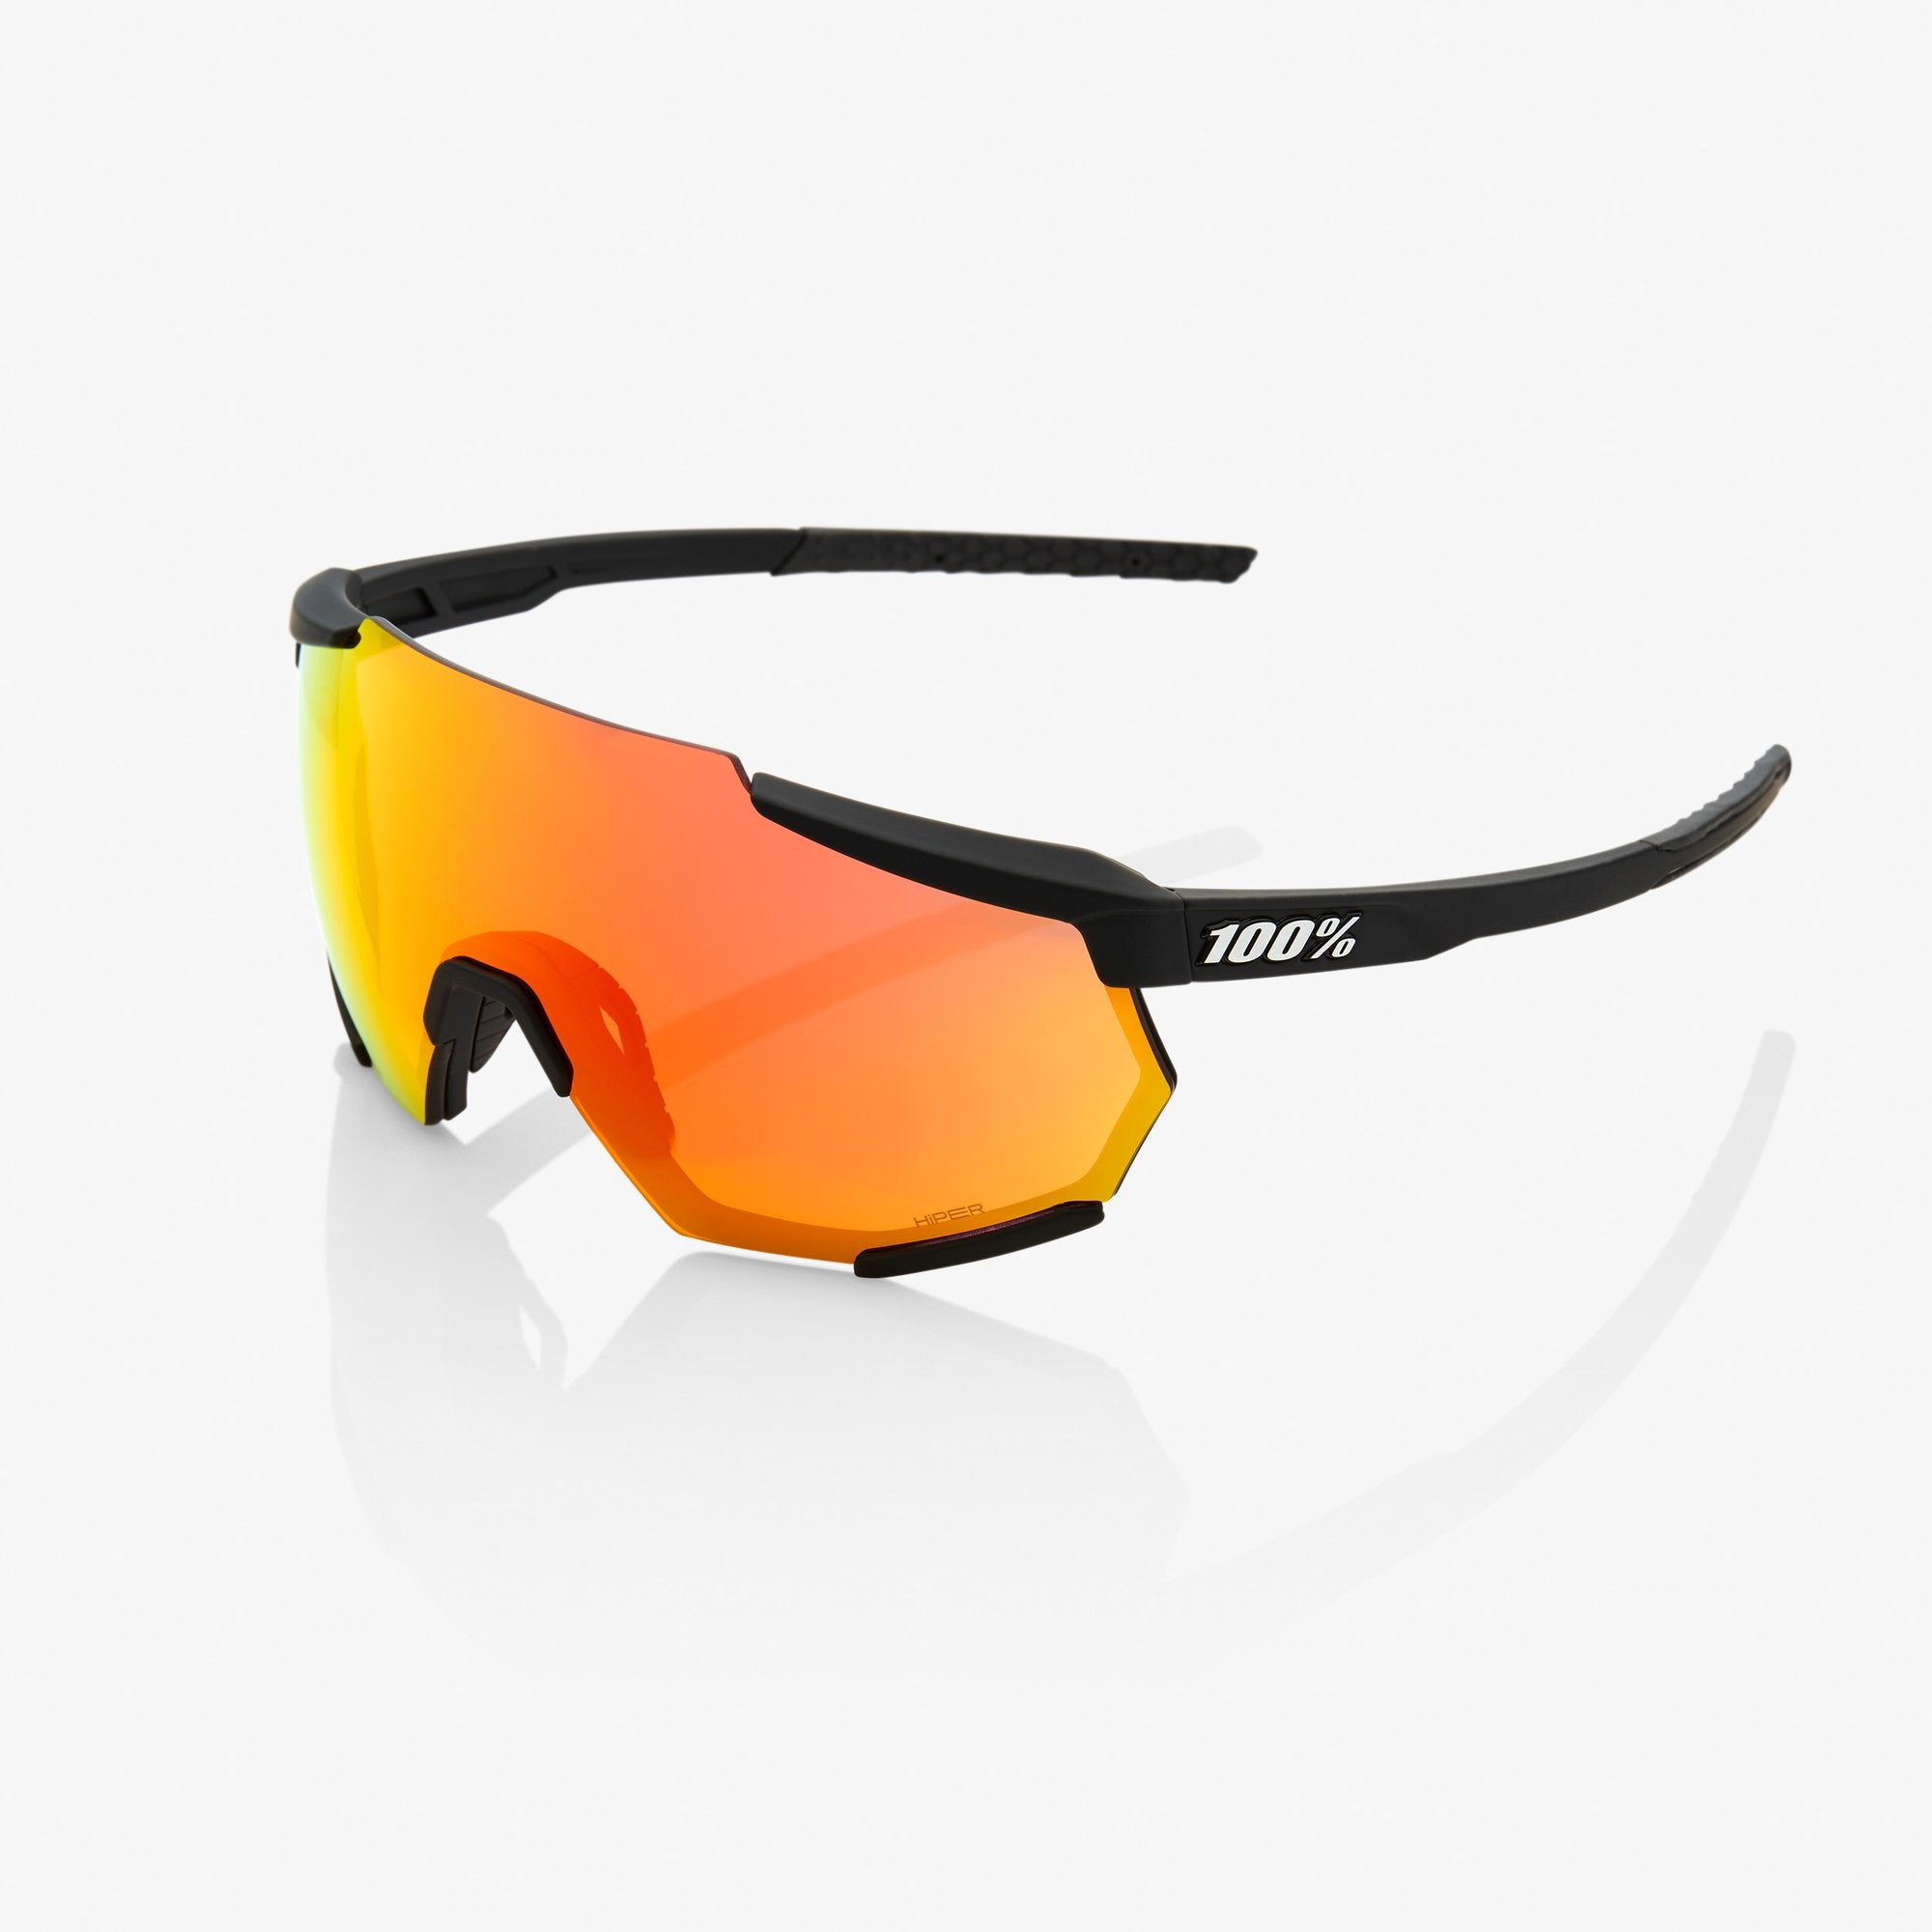 Ride 100% Sunglasses Racetrap - Soft Tact Black - HiPER Red Multilayer Mirror Lens